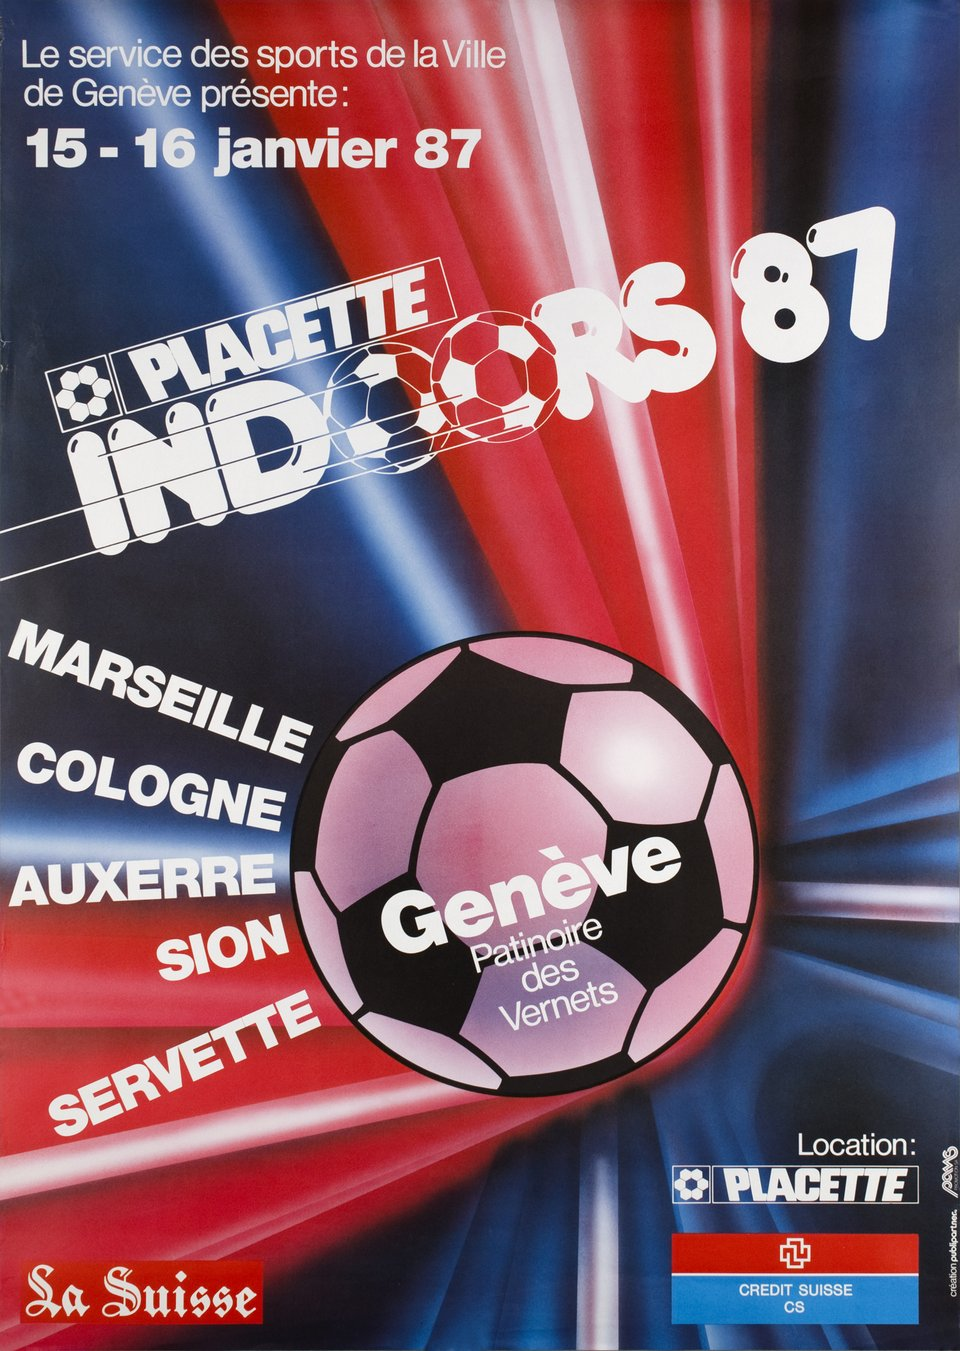 Placette Indoors 86 – Affiche ancienne –  PUBLIPARTNER – 1986